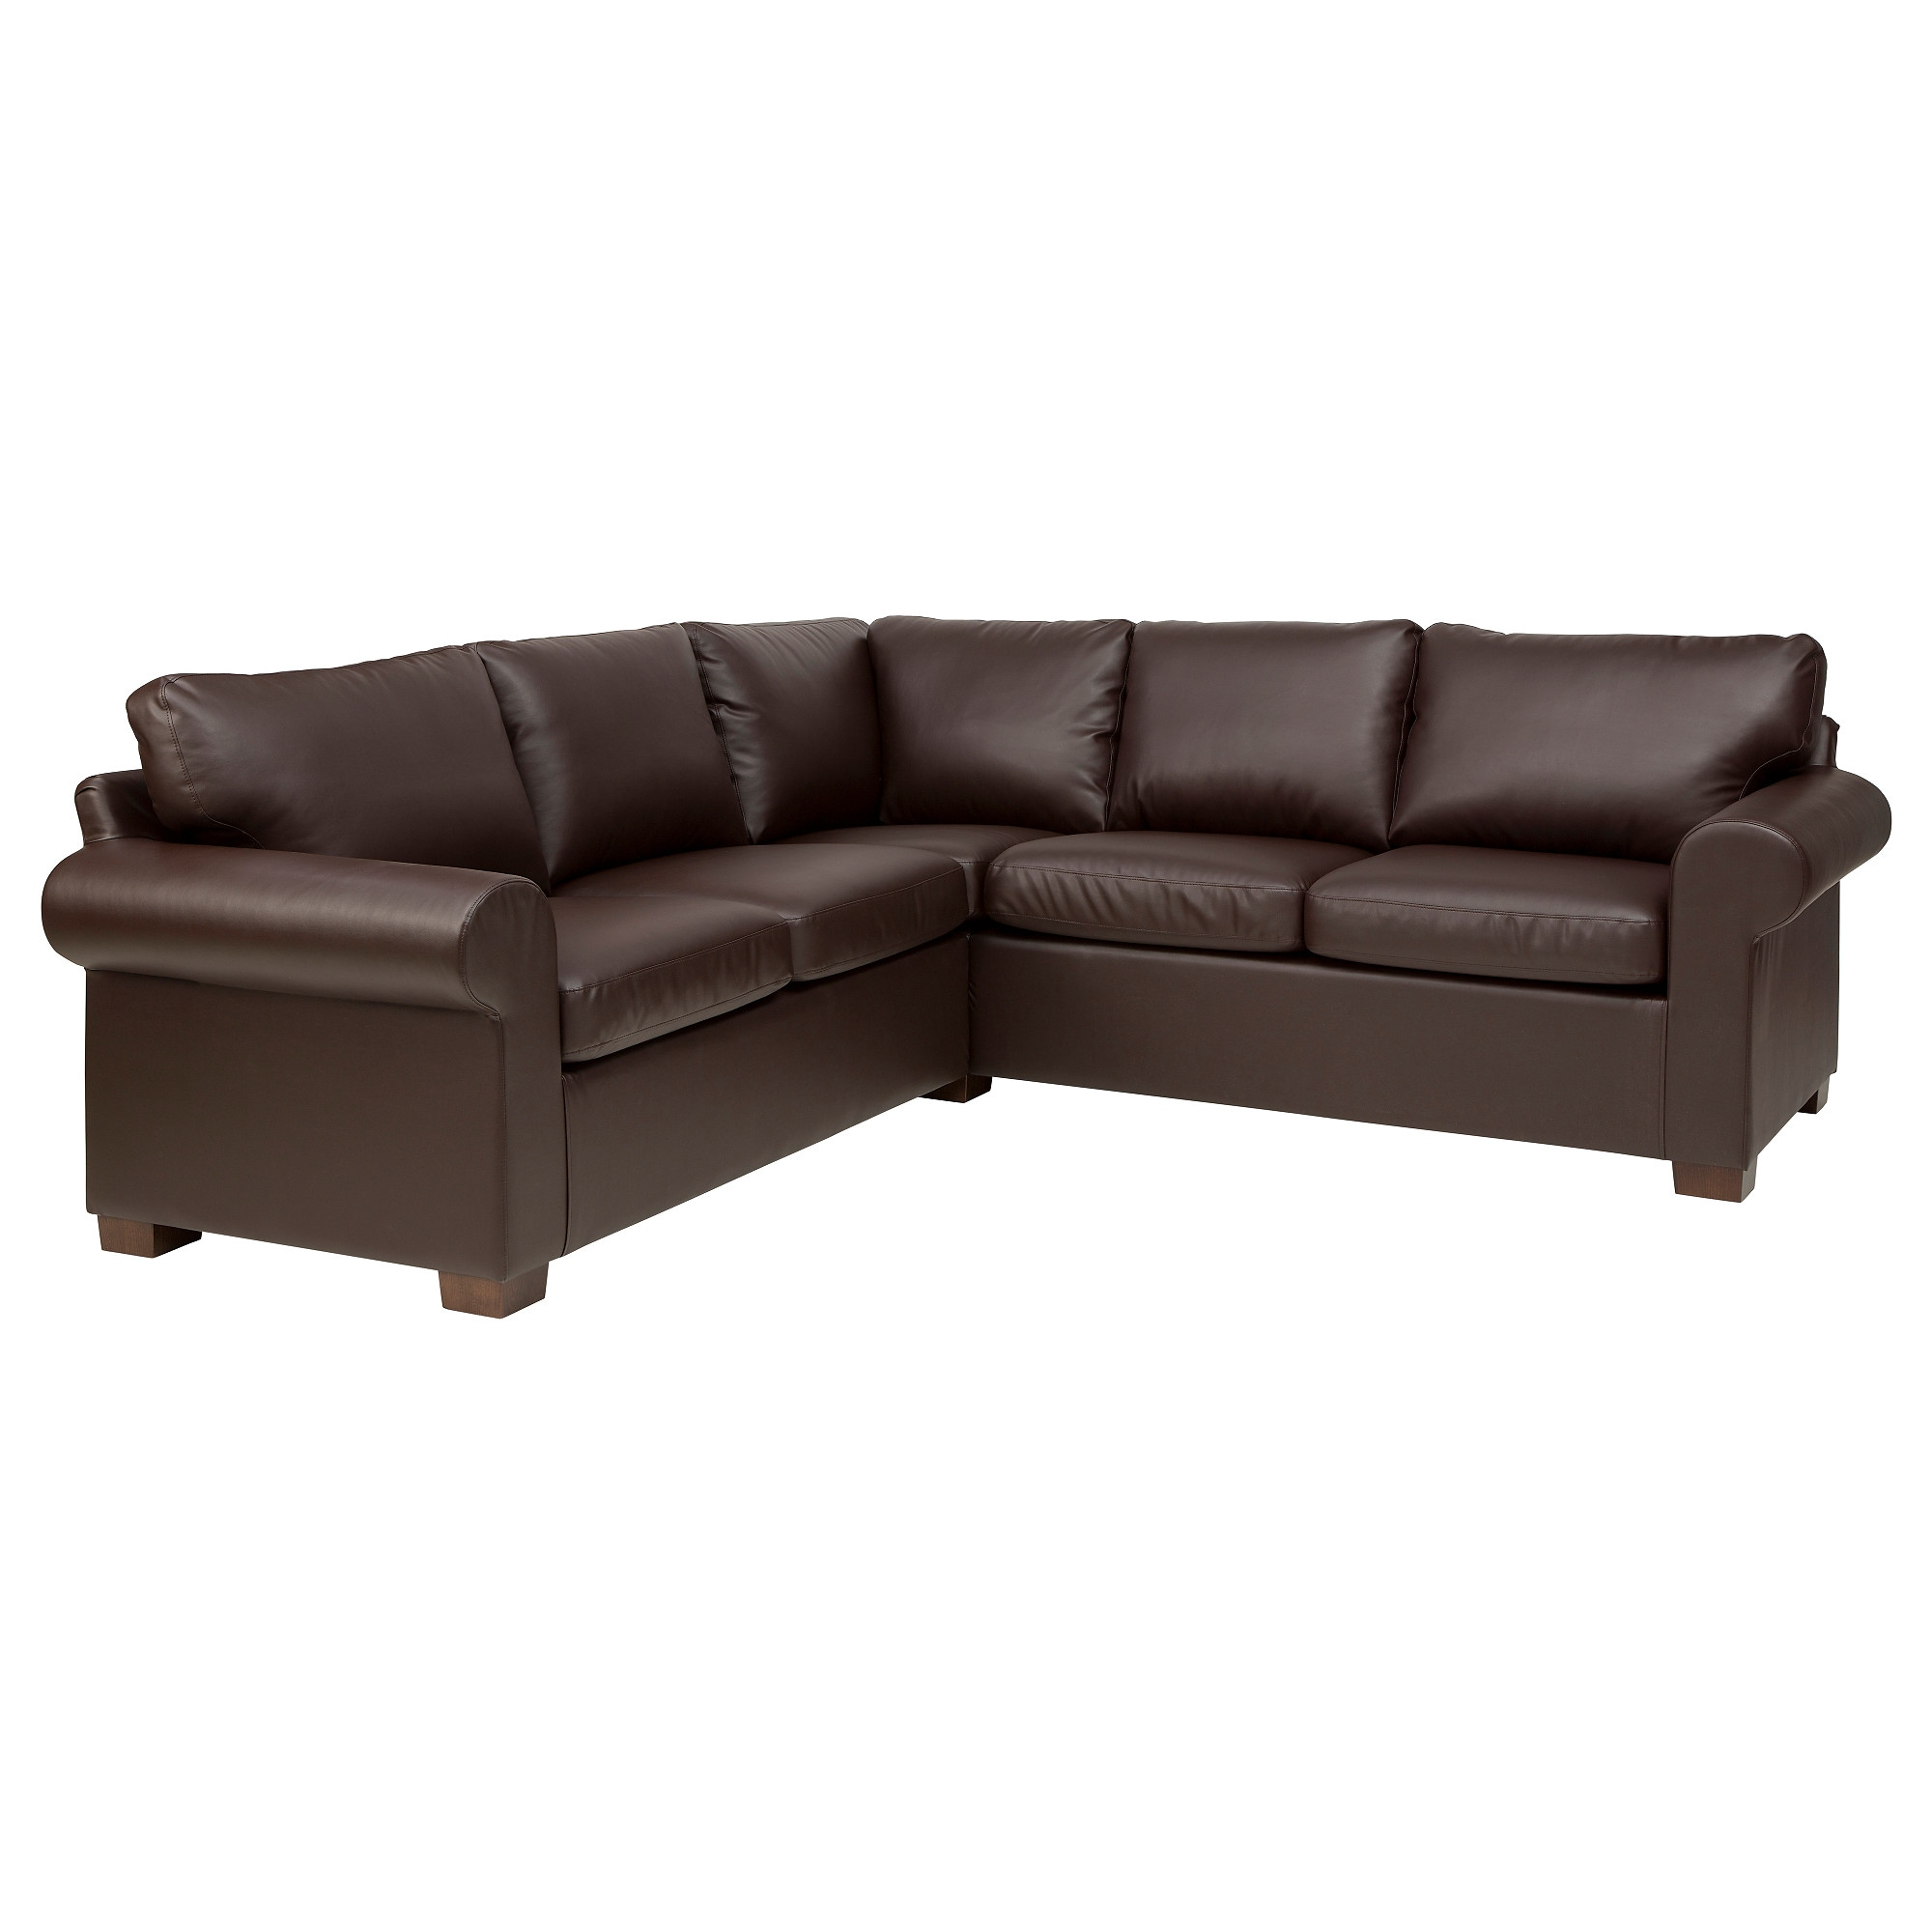 Ikea Leather Sectionals Ikea Karlstad Loveseat And Chai Batar Custom Made Cover Fits Ikea